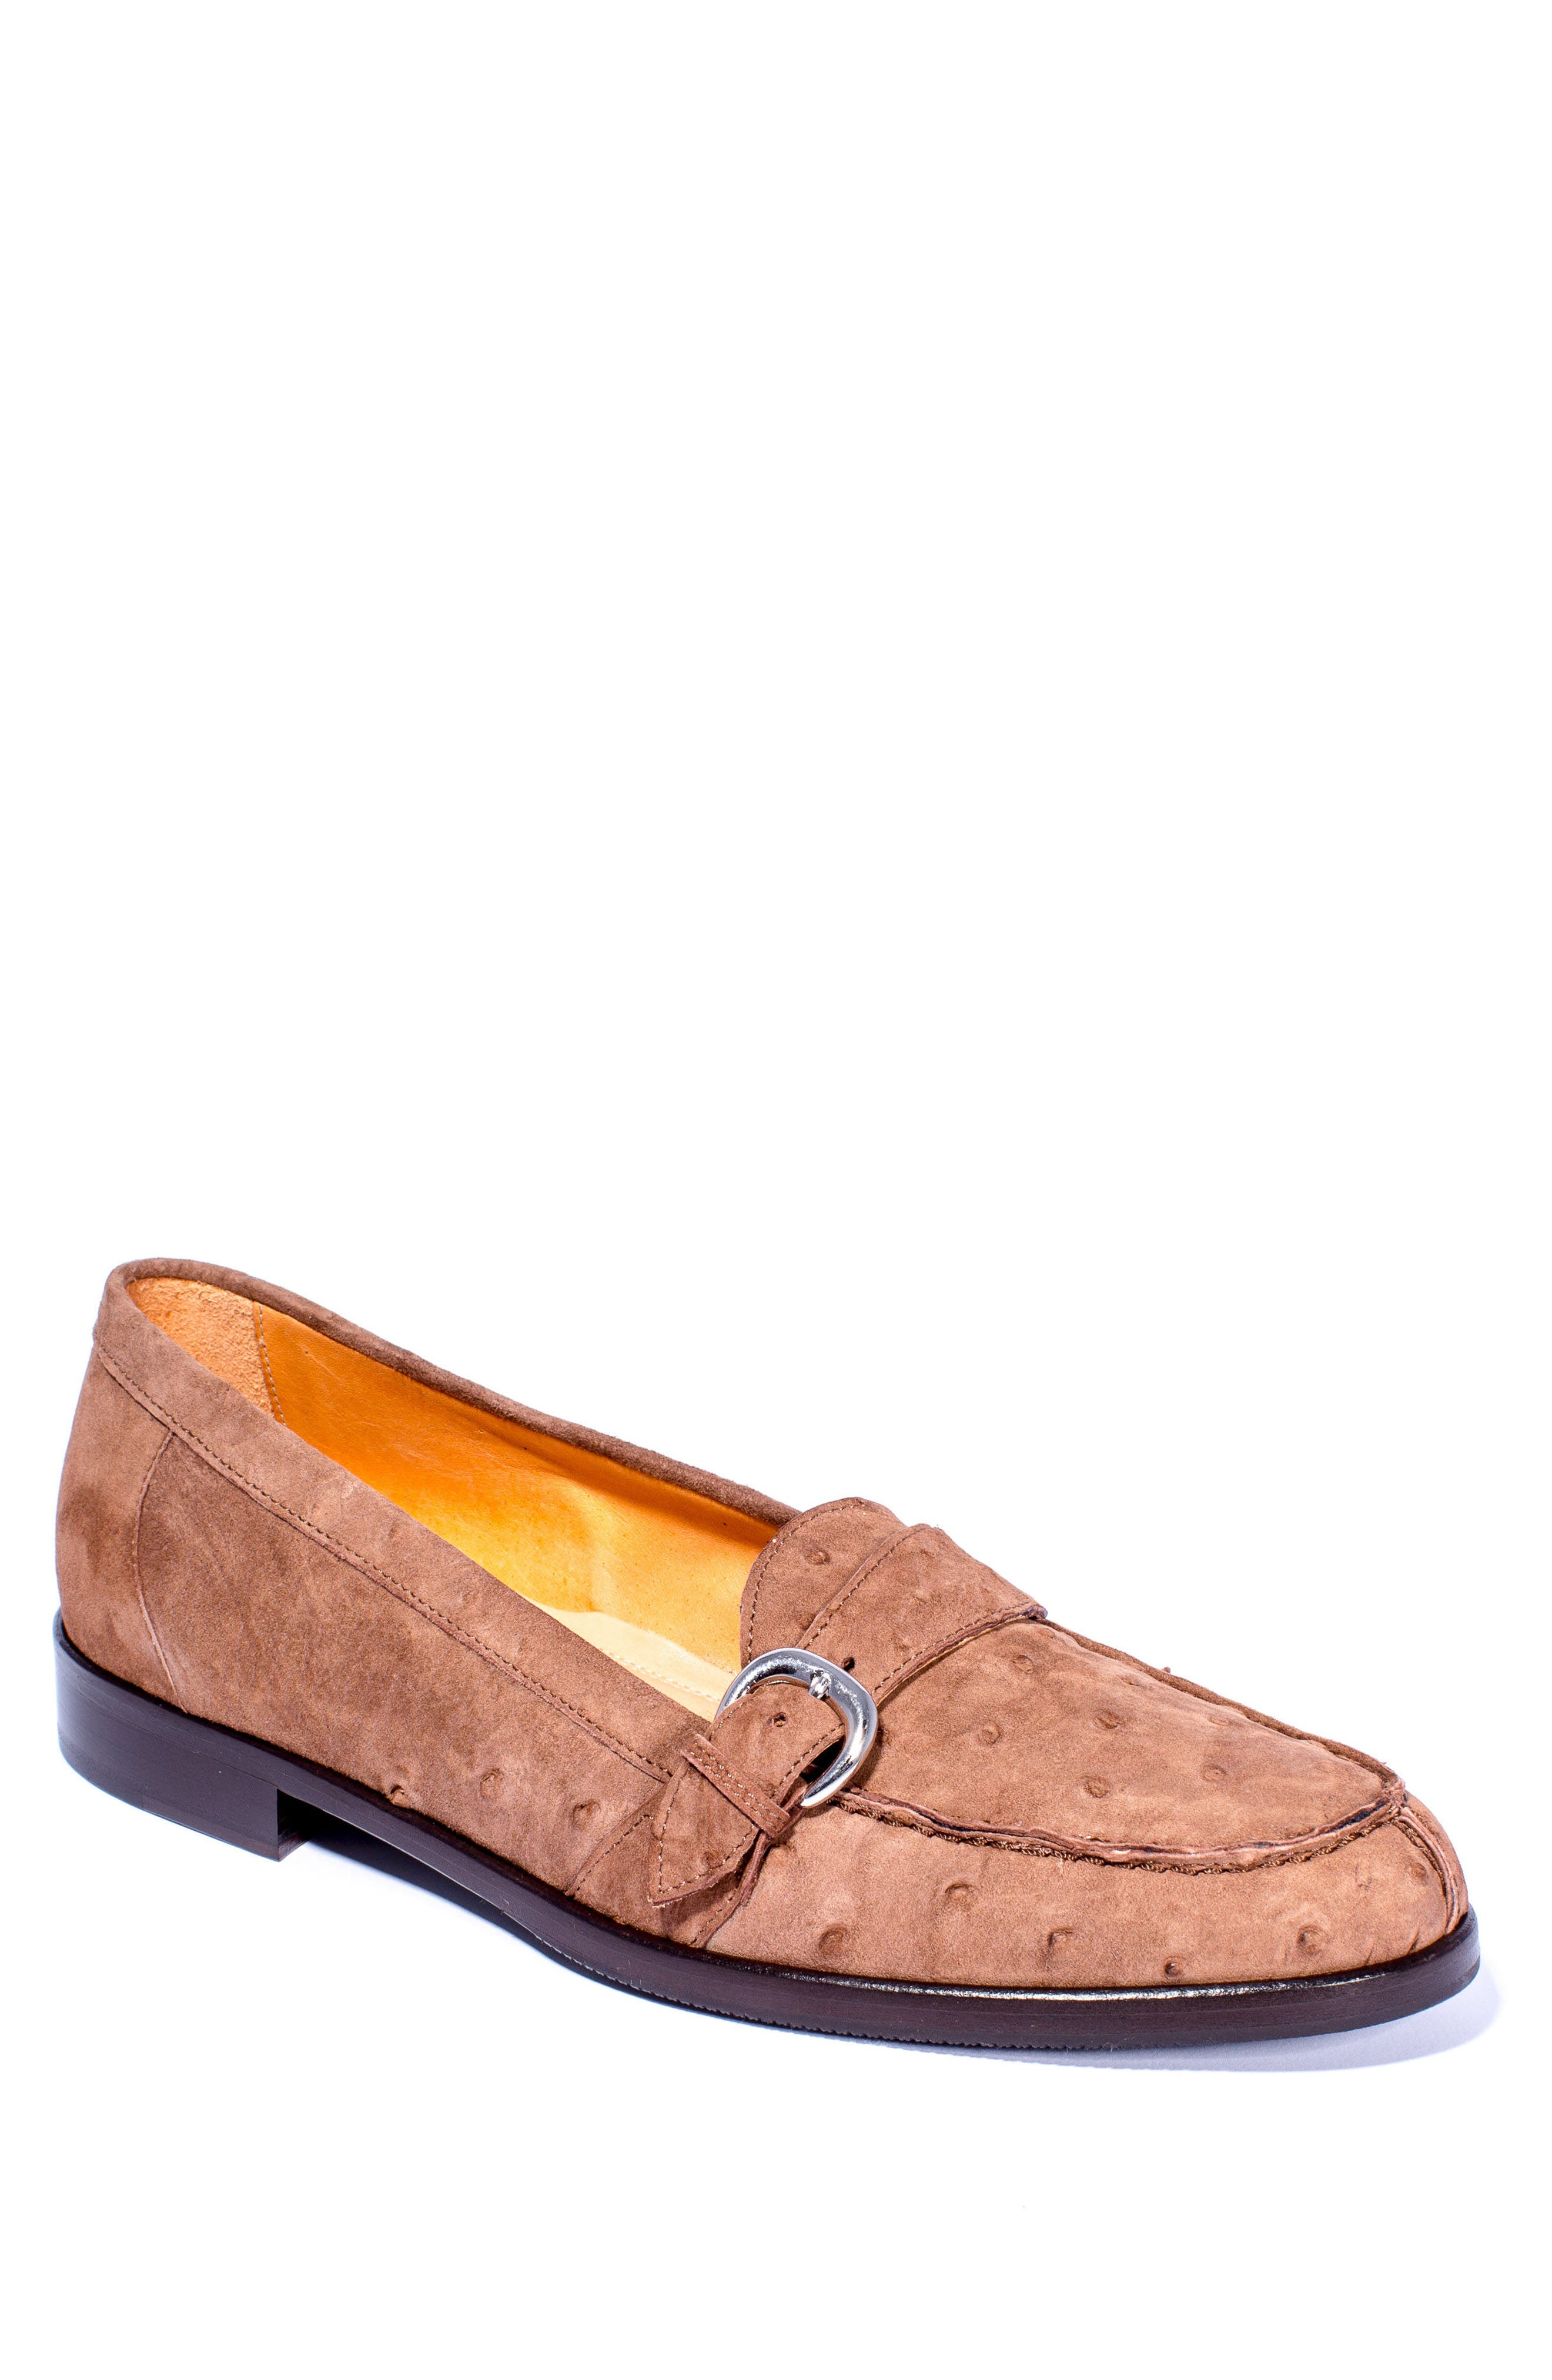 Zelli Orlando Teju Lizard Loafer (Men)